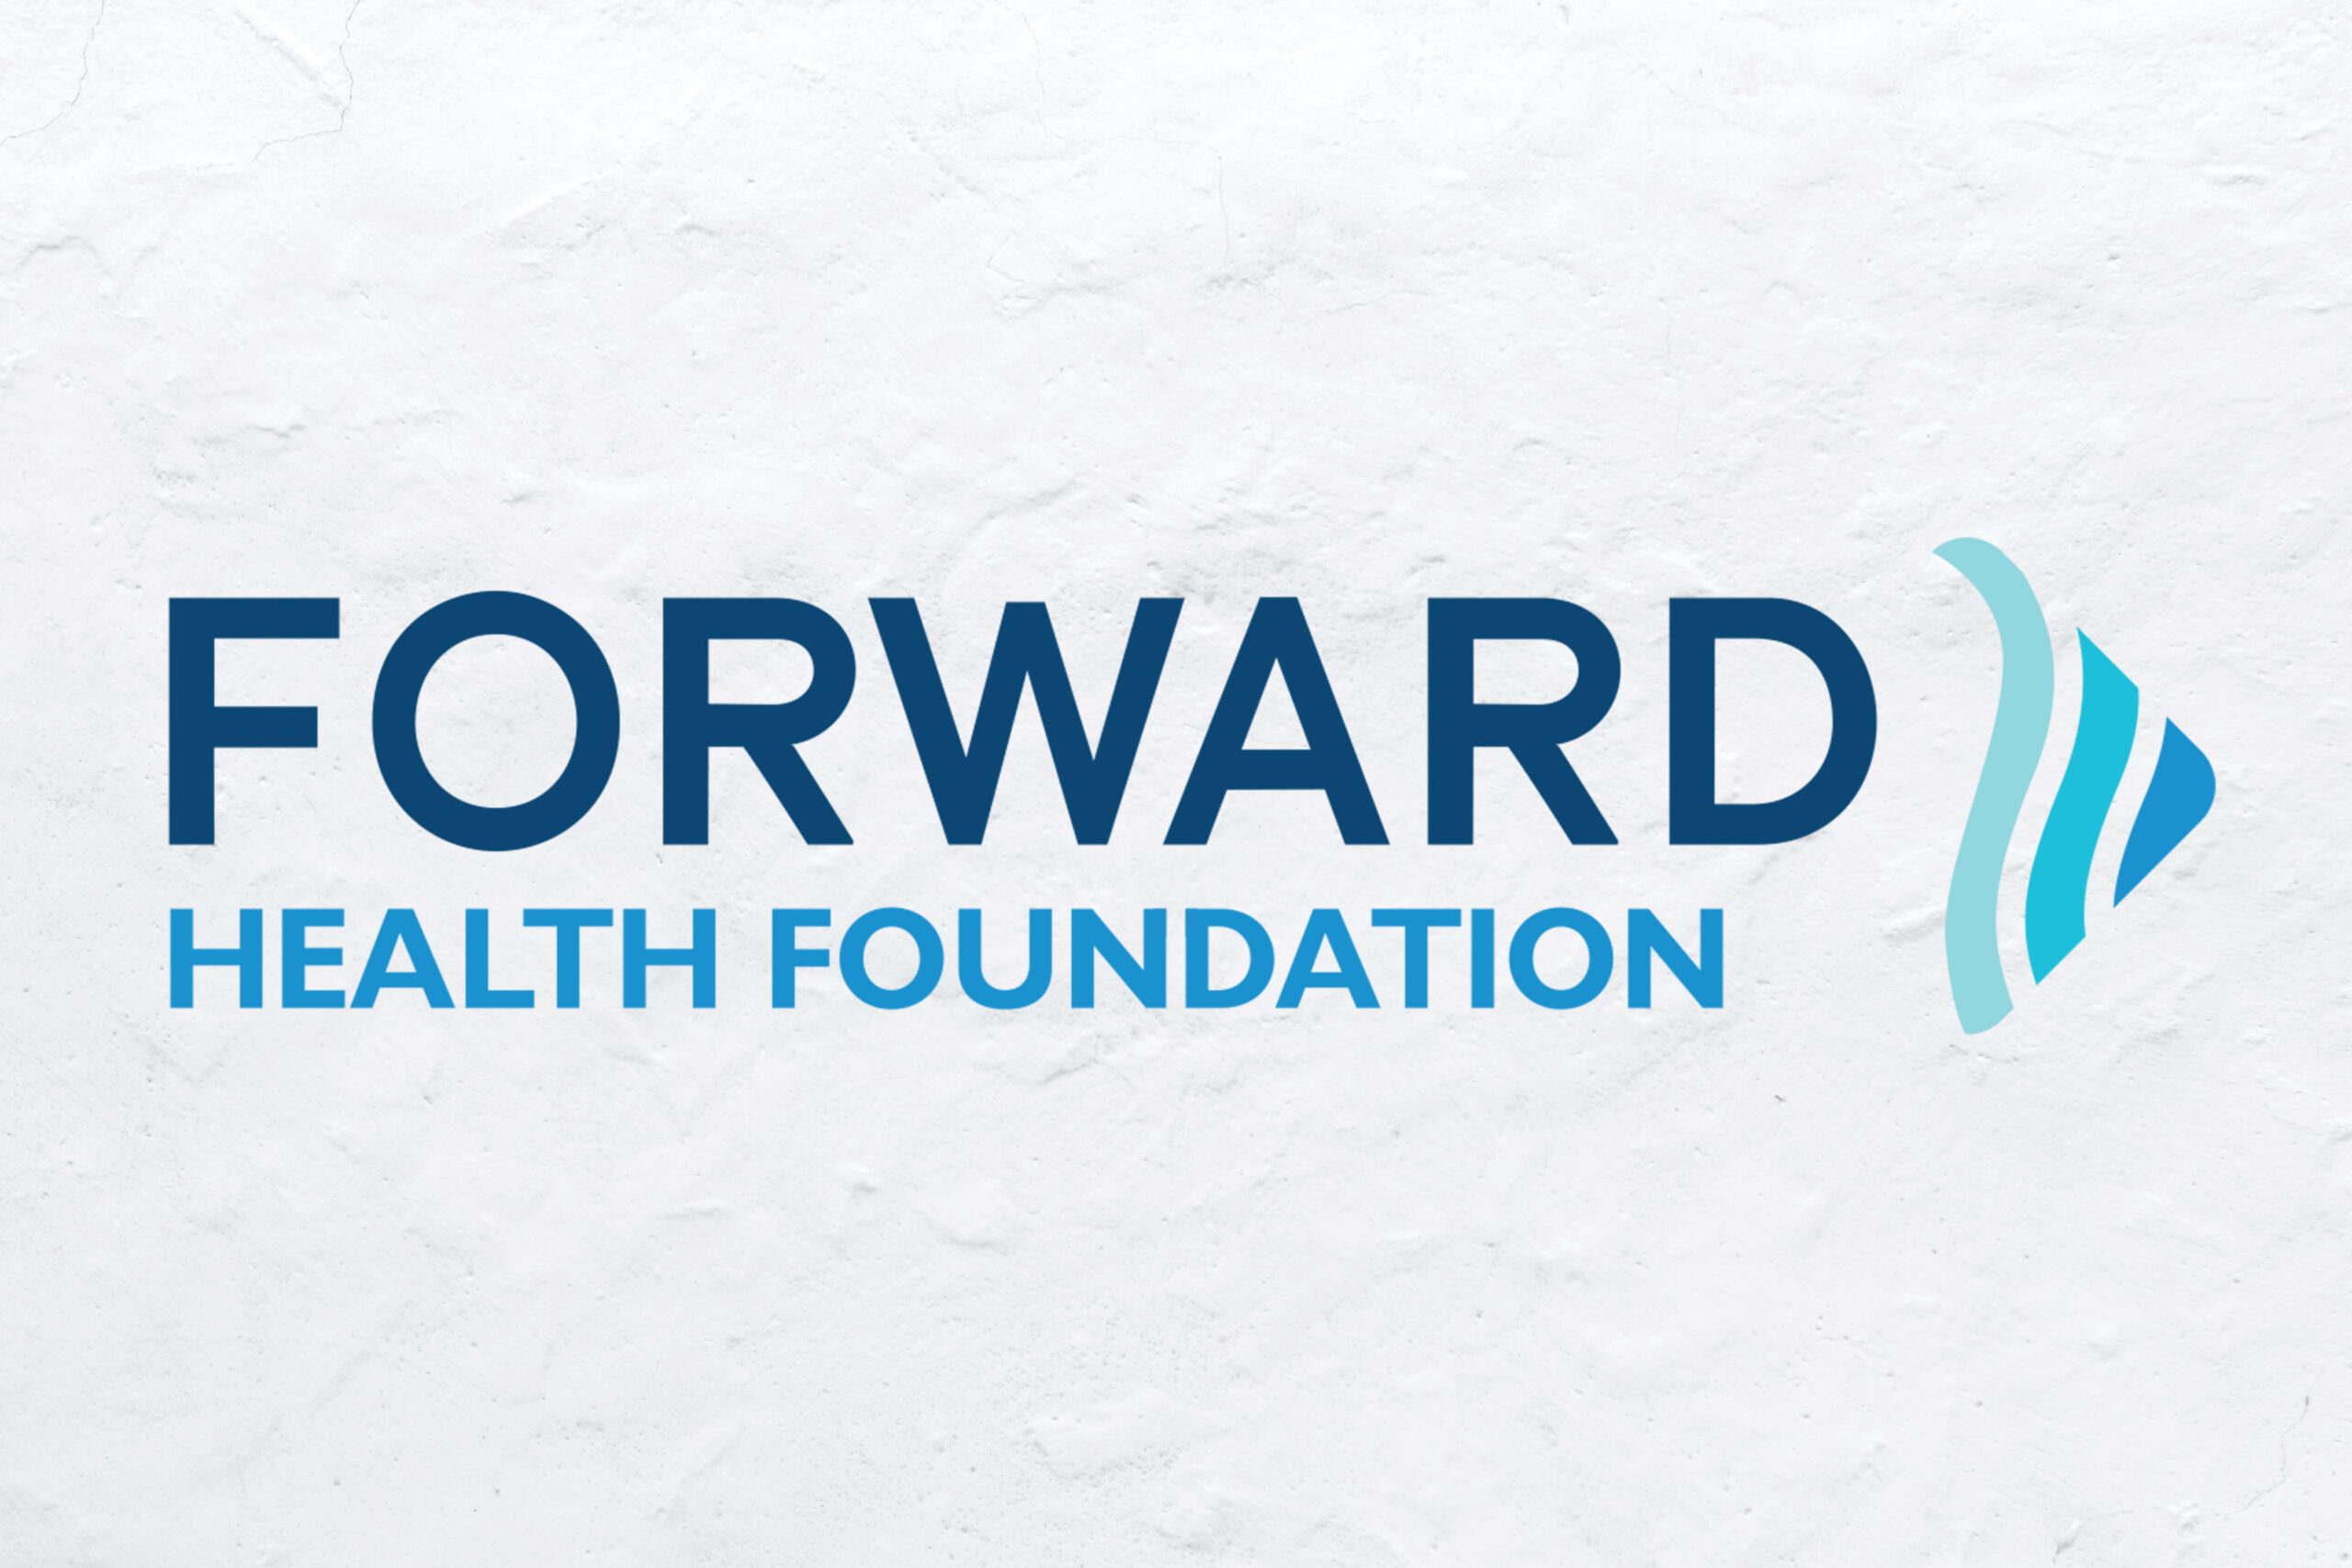 New Name, Same Mission - Forward Health Foundation